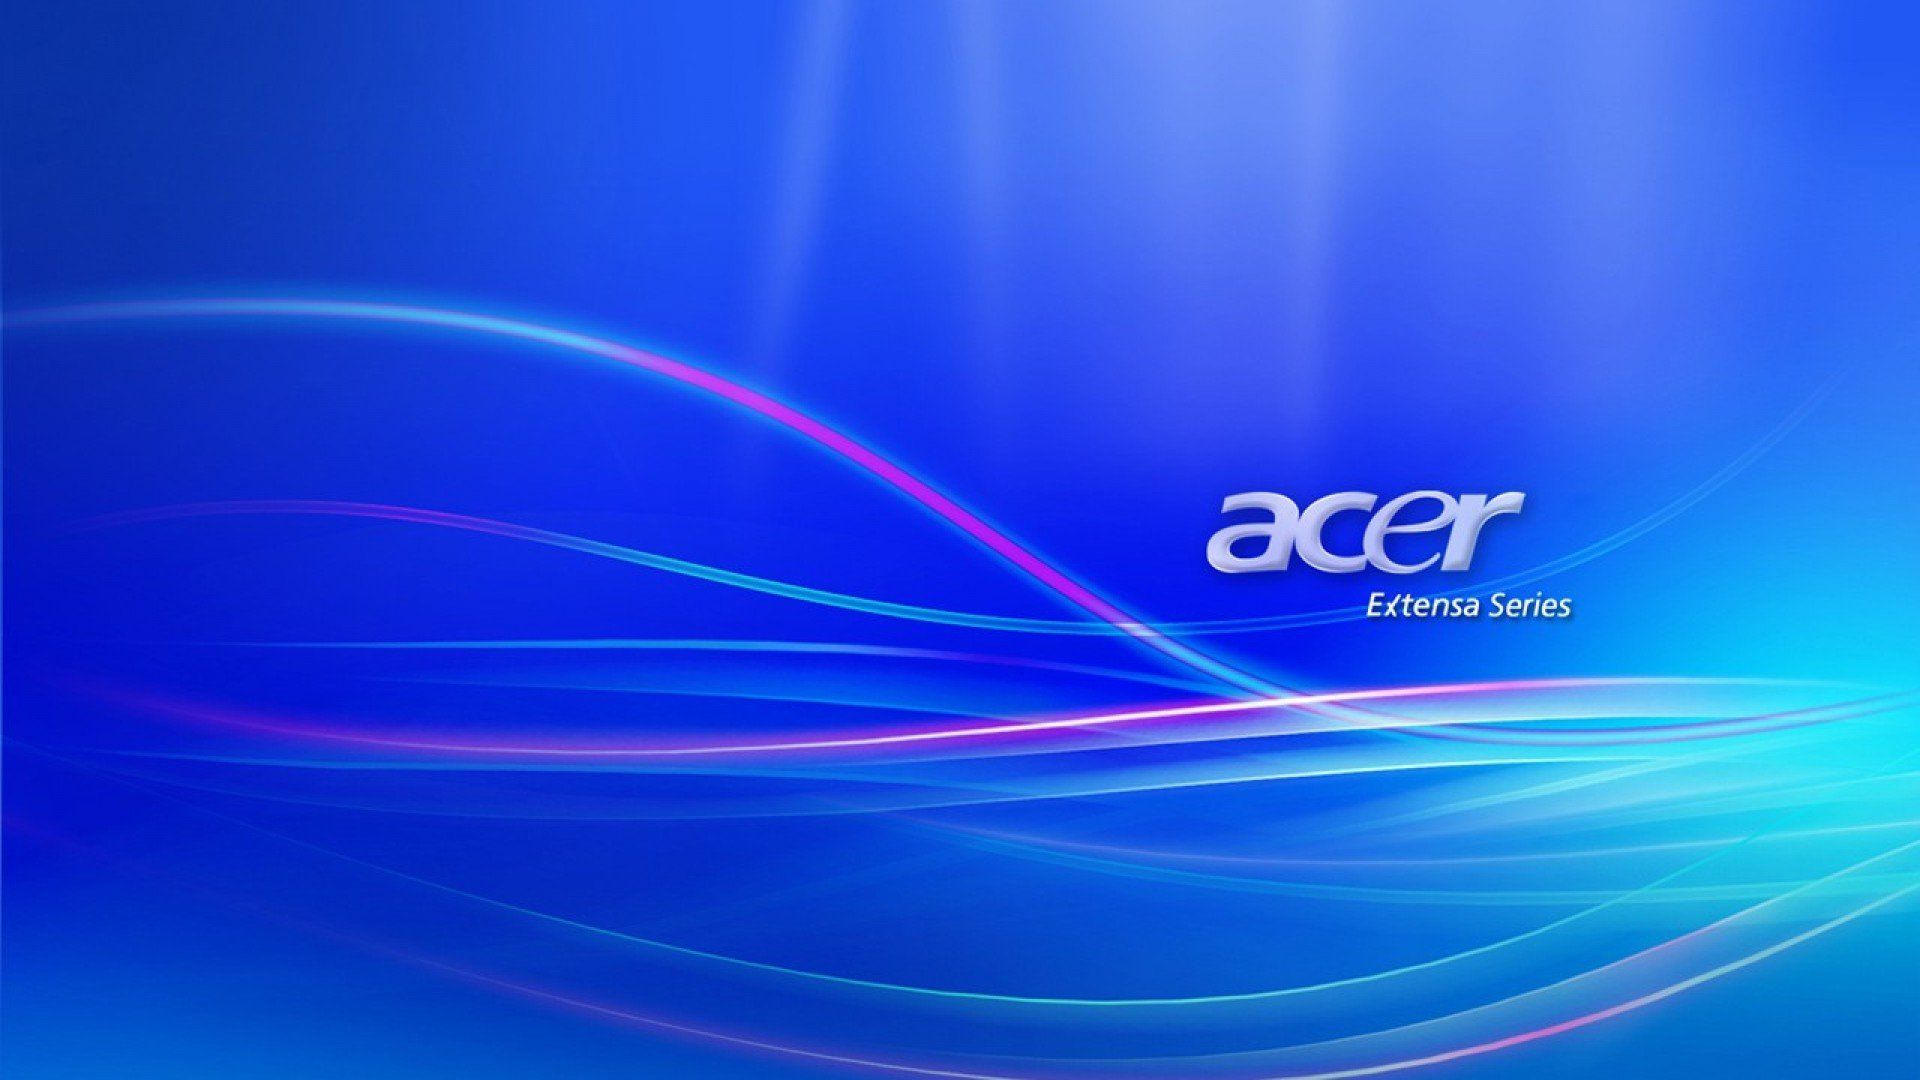 Acer wallpaper hd